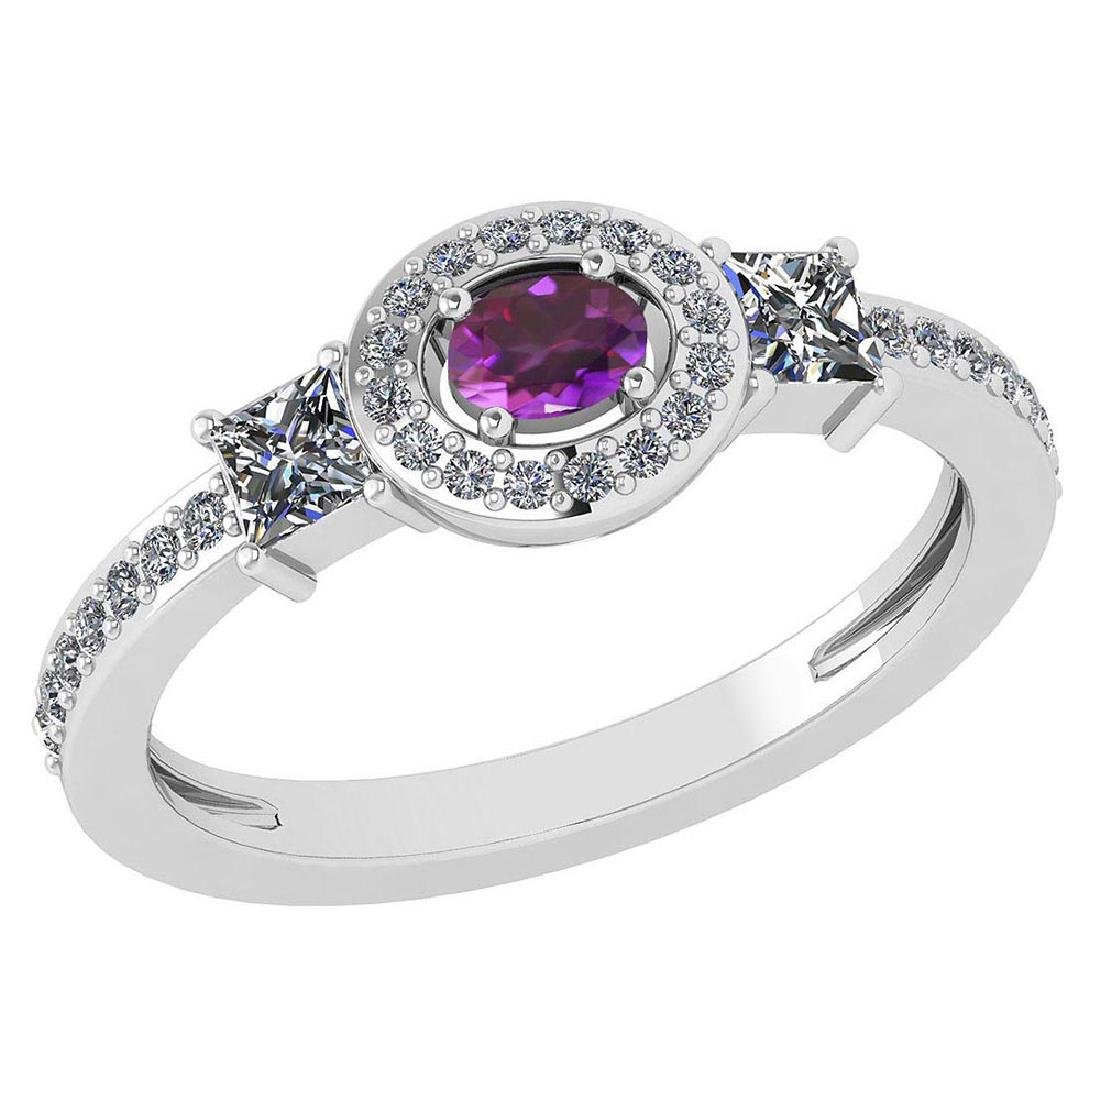 Certified 0.77 Ctw Amethyst And Diamond 14k White Gold